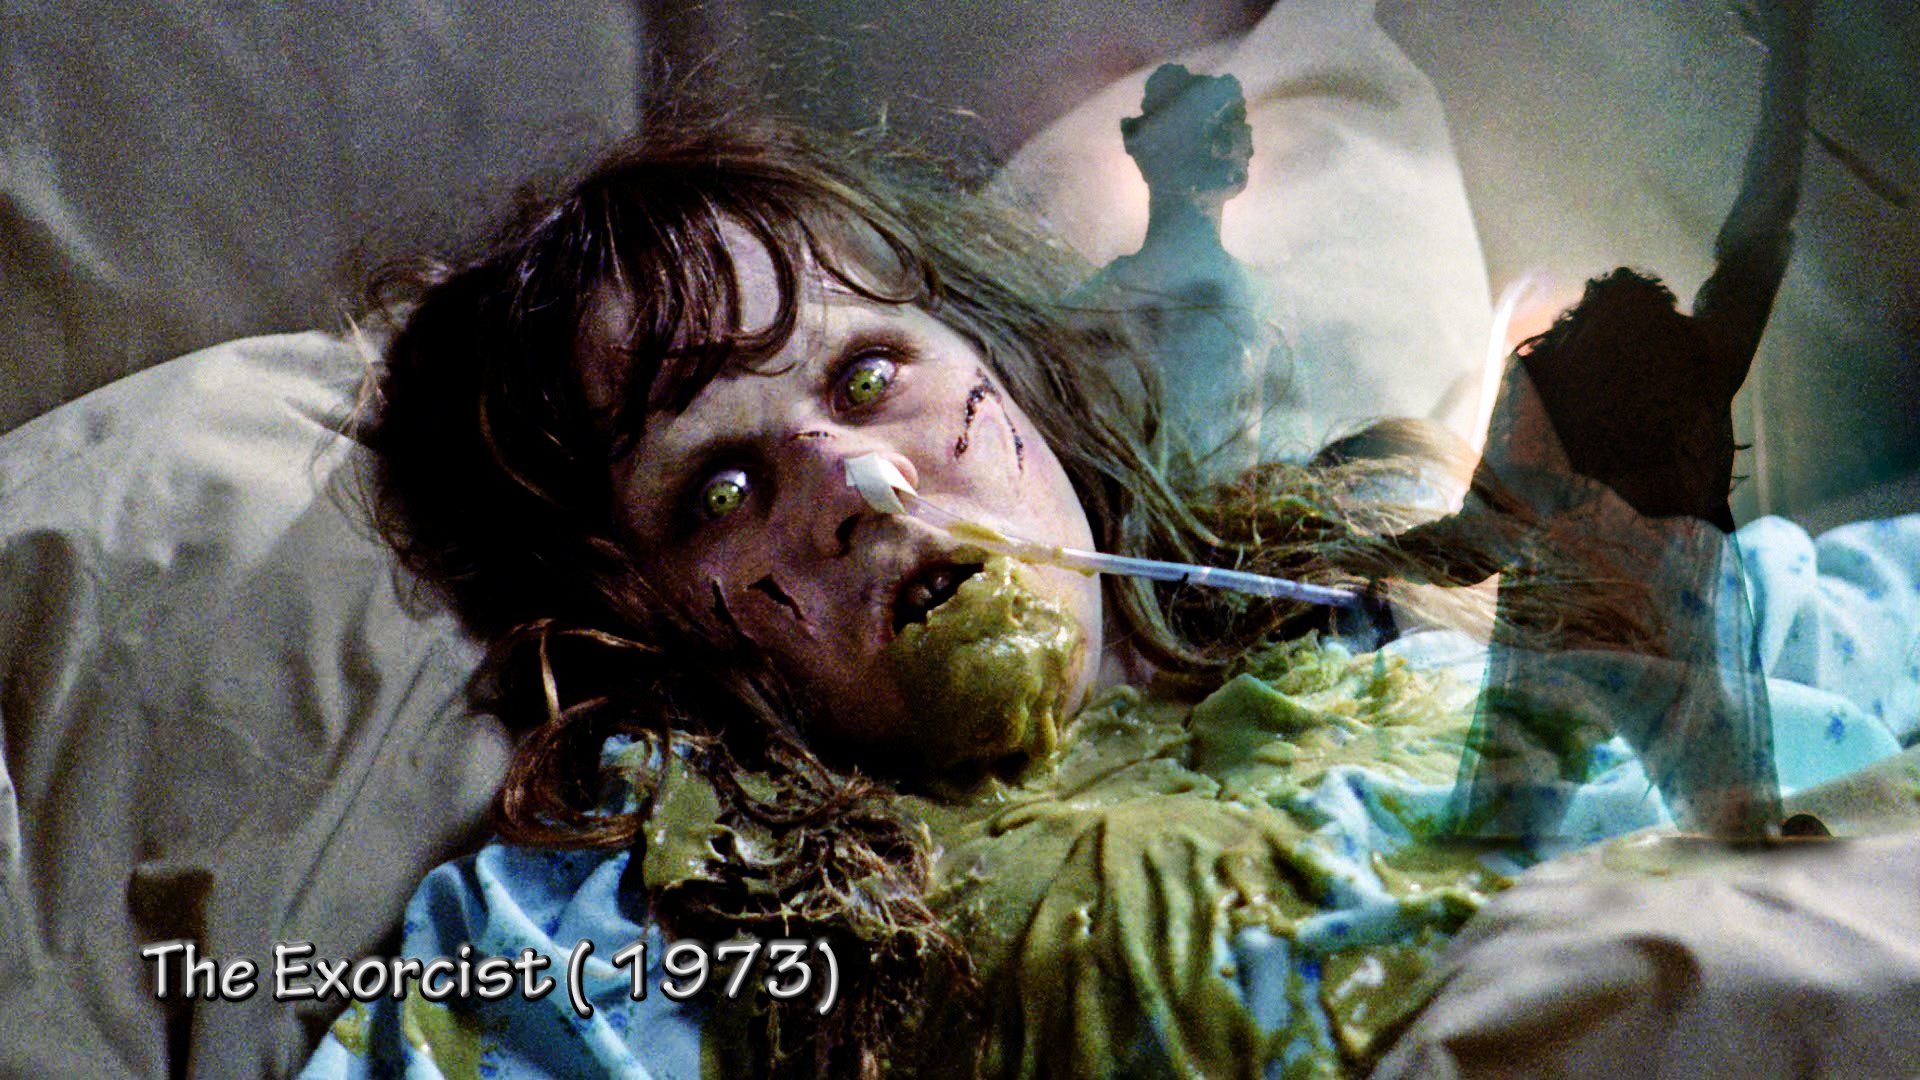 The Exorcist Full HD Wallpaper and Background Image ... | 1920 x 1080 jpeg 362kB